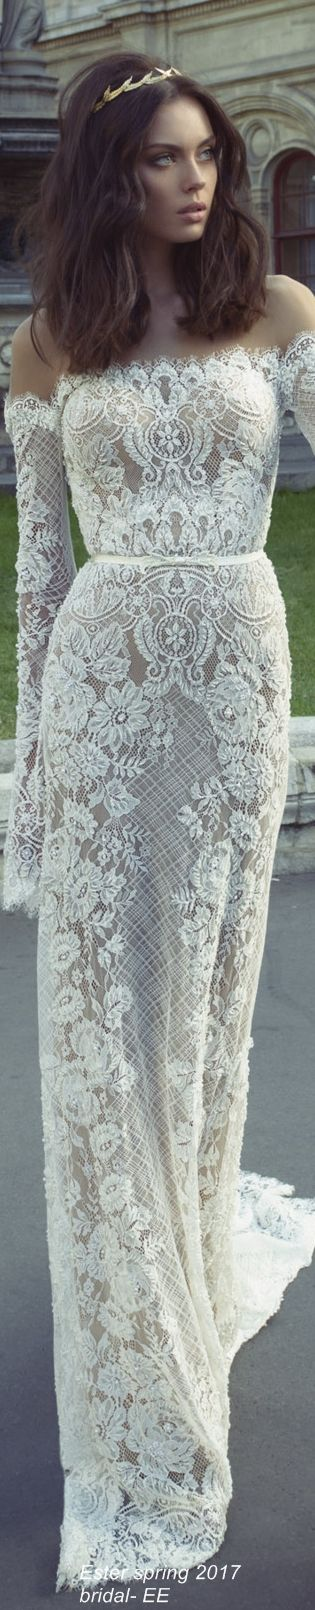 Gorgeous lace wedding gown.